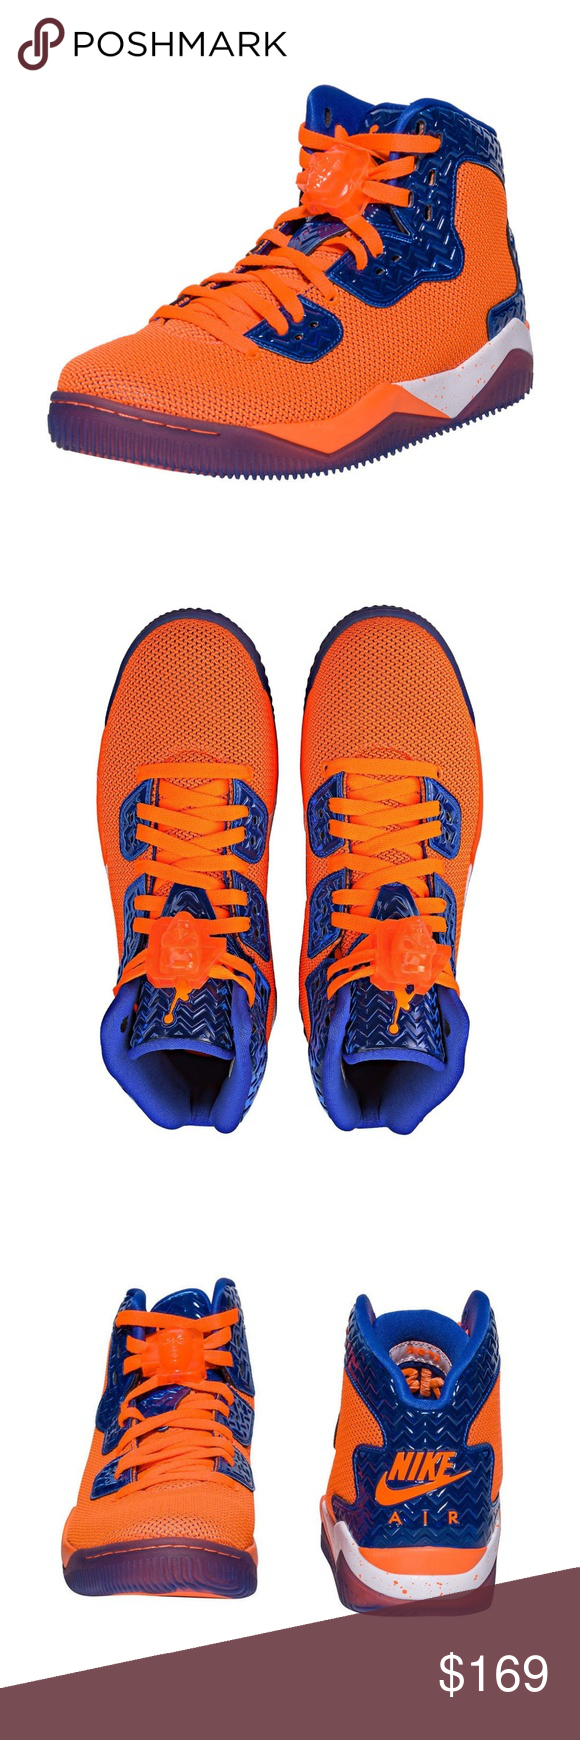 the latest 851b2 d2114 NEW Size 9.5 Nike Air Jordan Spike Forty NY KNICKS BRAND NEW without Box  RARE Nike